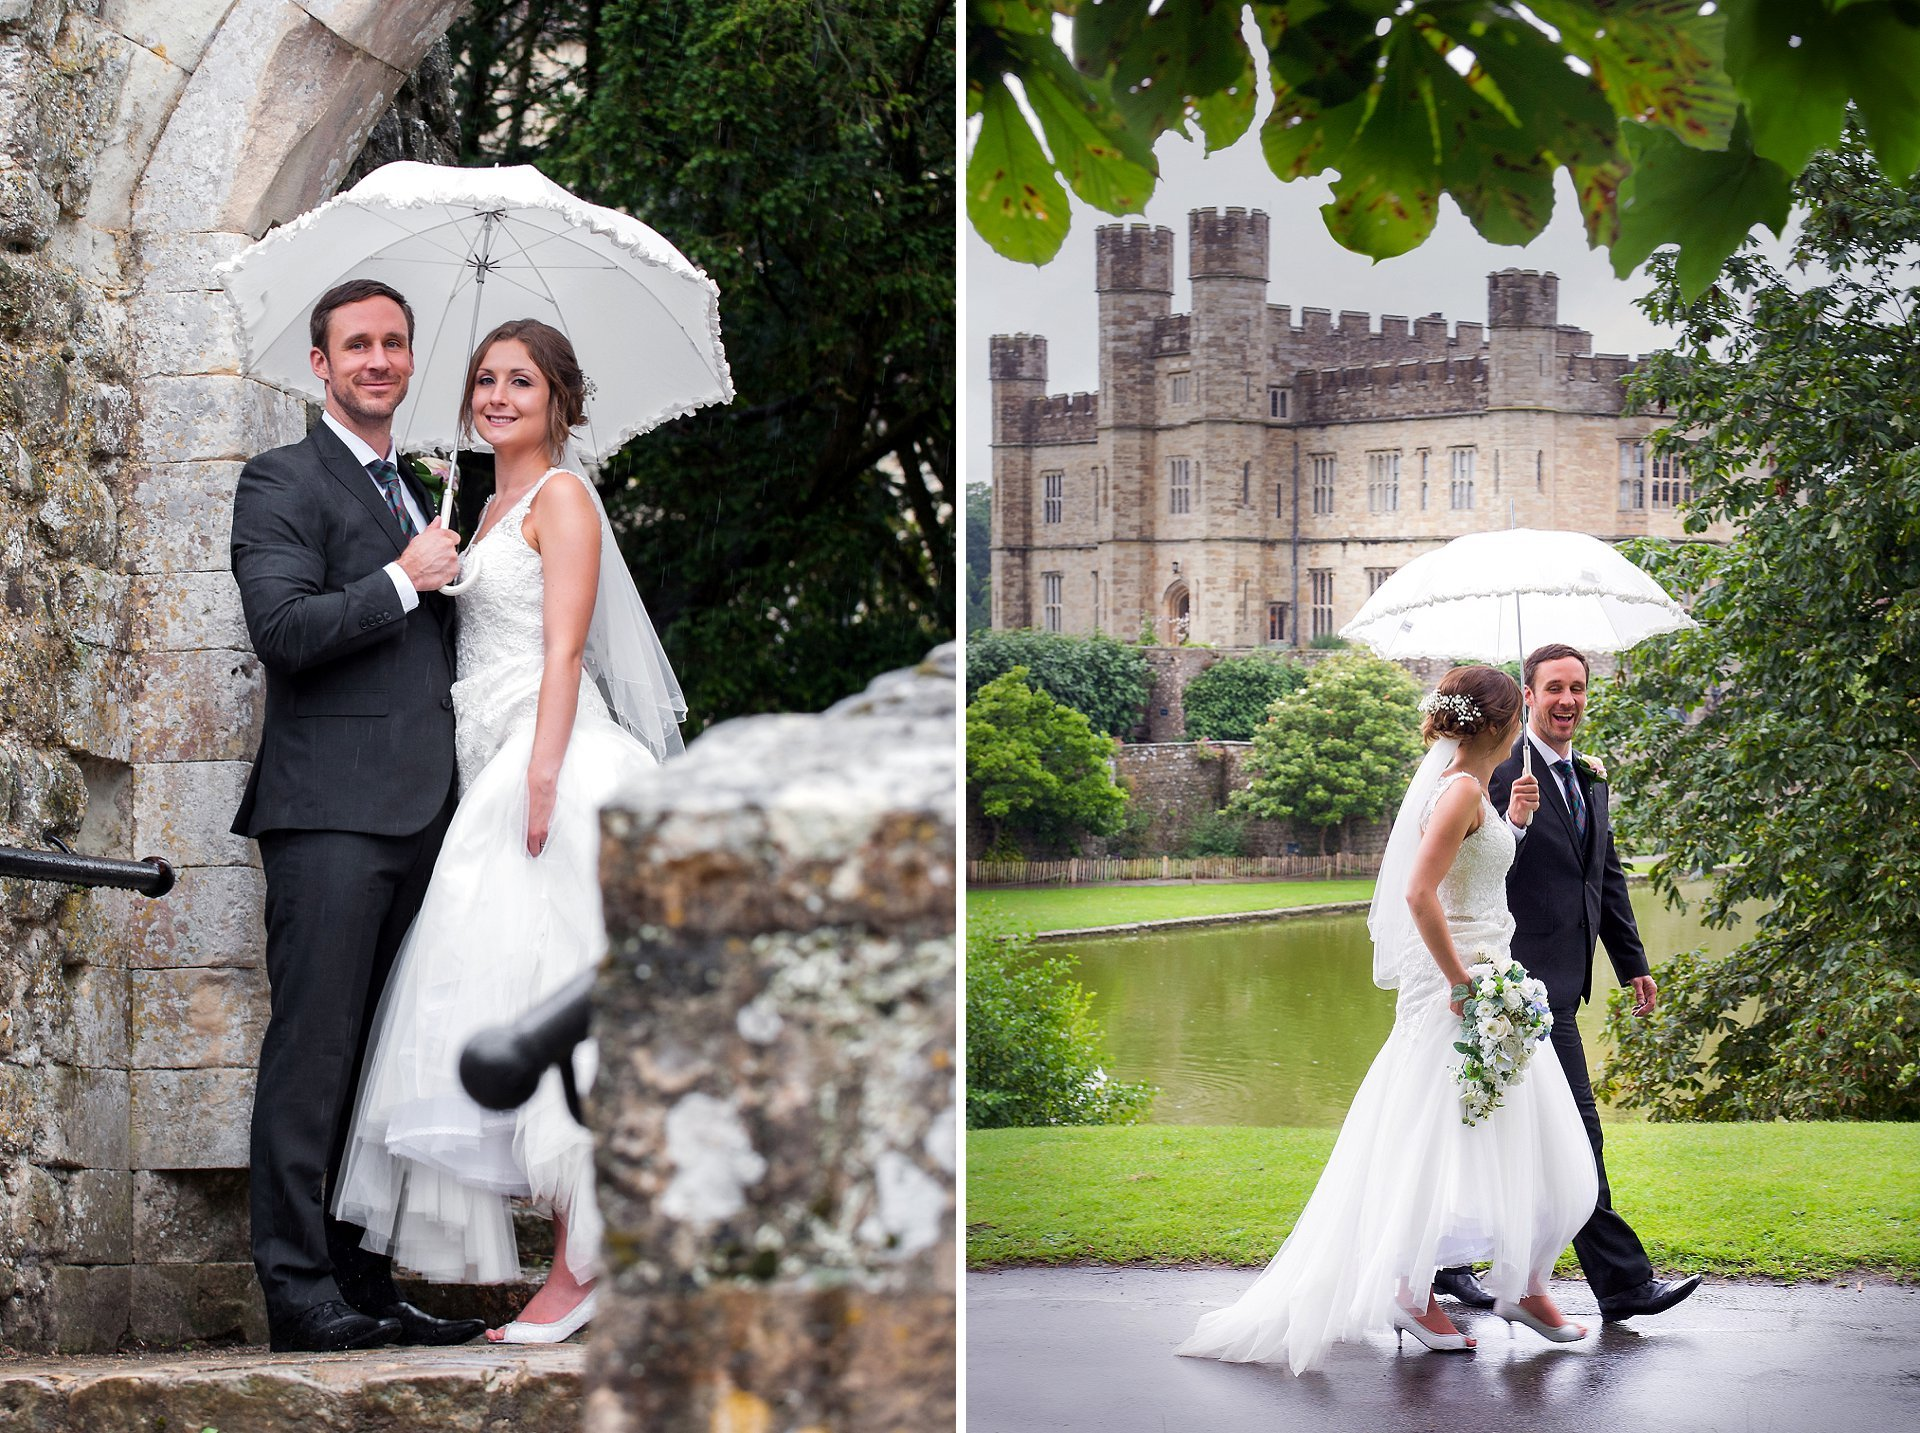 Bride & groom at Leeds Castle during their wedding day in the old ruin (portcullis) and in front of the side view, with the groom laughing